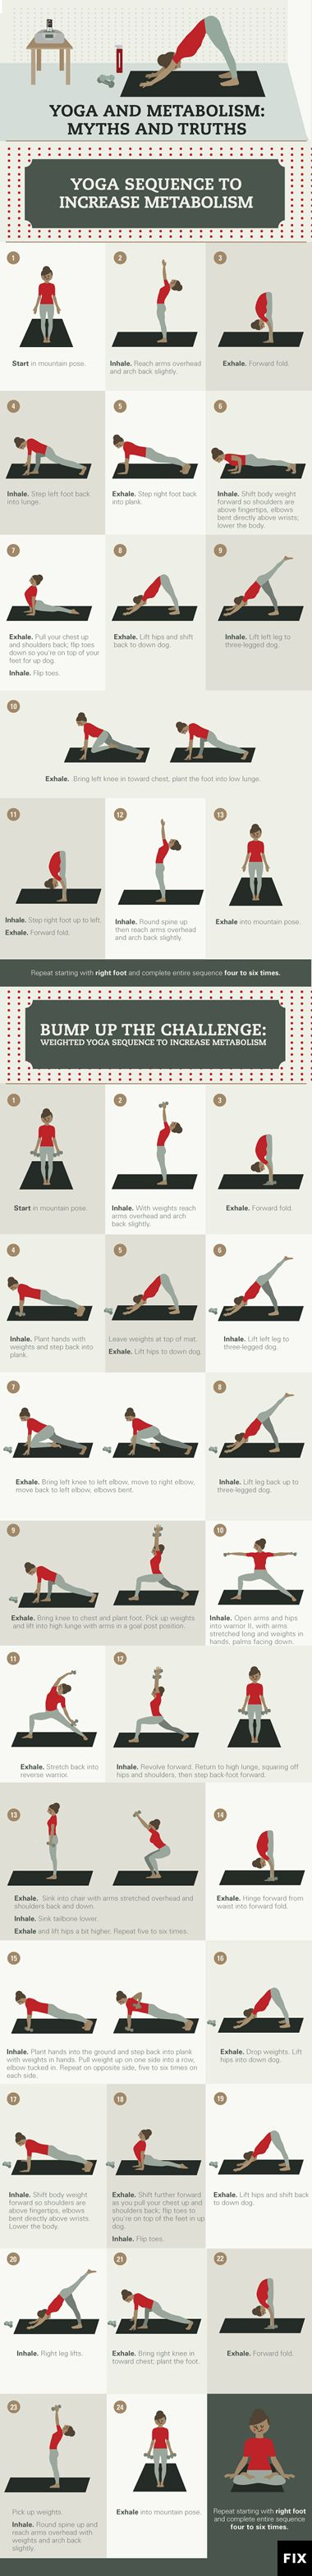 Increase your metabolic rate with these yoga poses! A morning yoga session will leave you burning calories all day long.